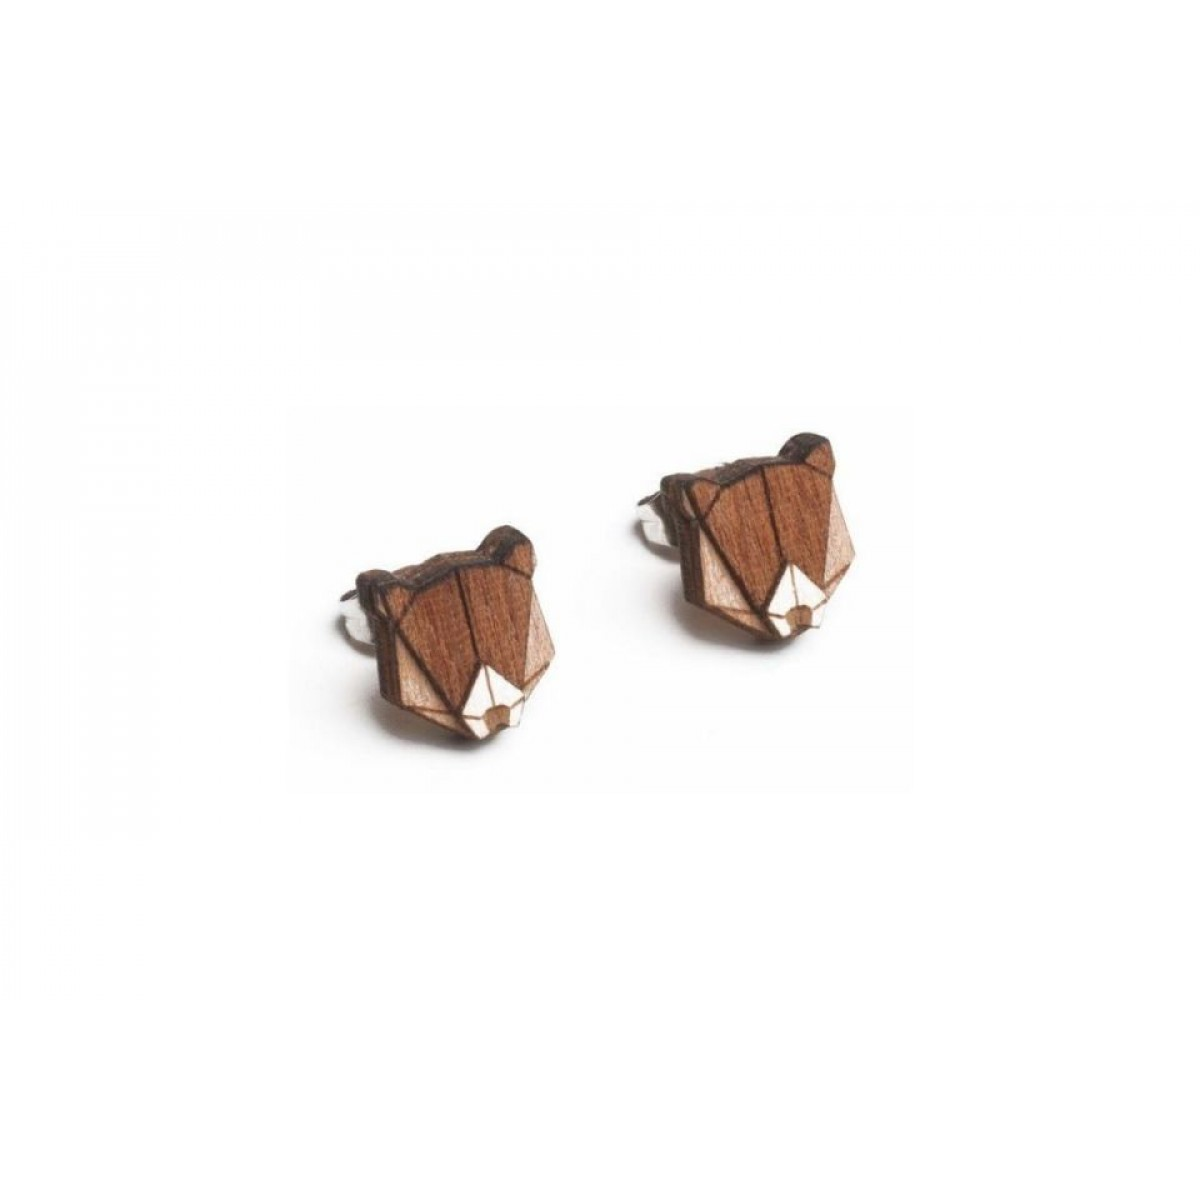 BeWooden Ohrringe - Ohrstecker aus Holz - Bear Earrings